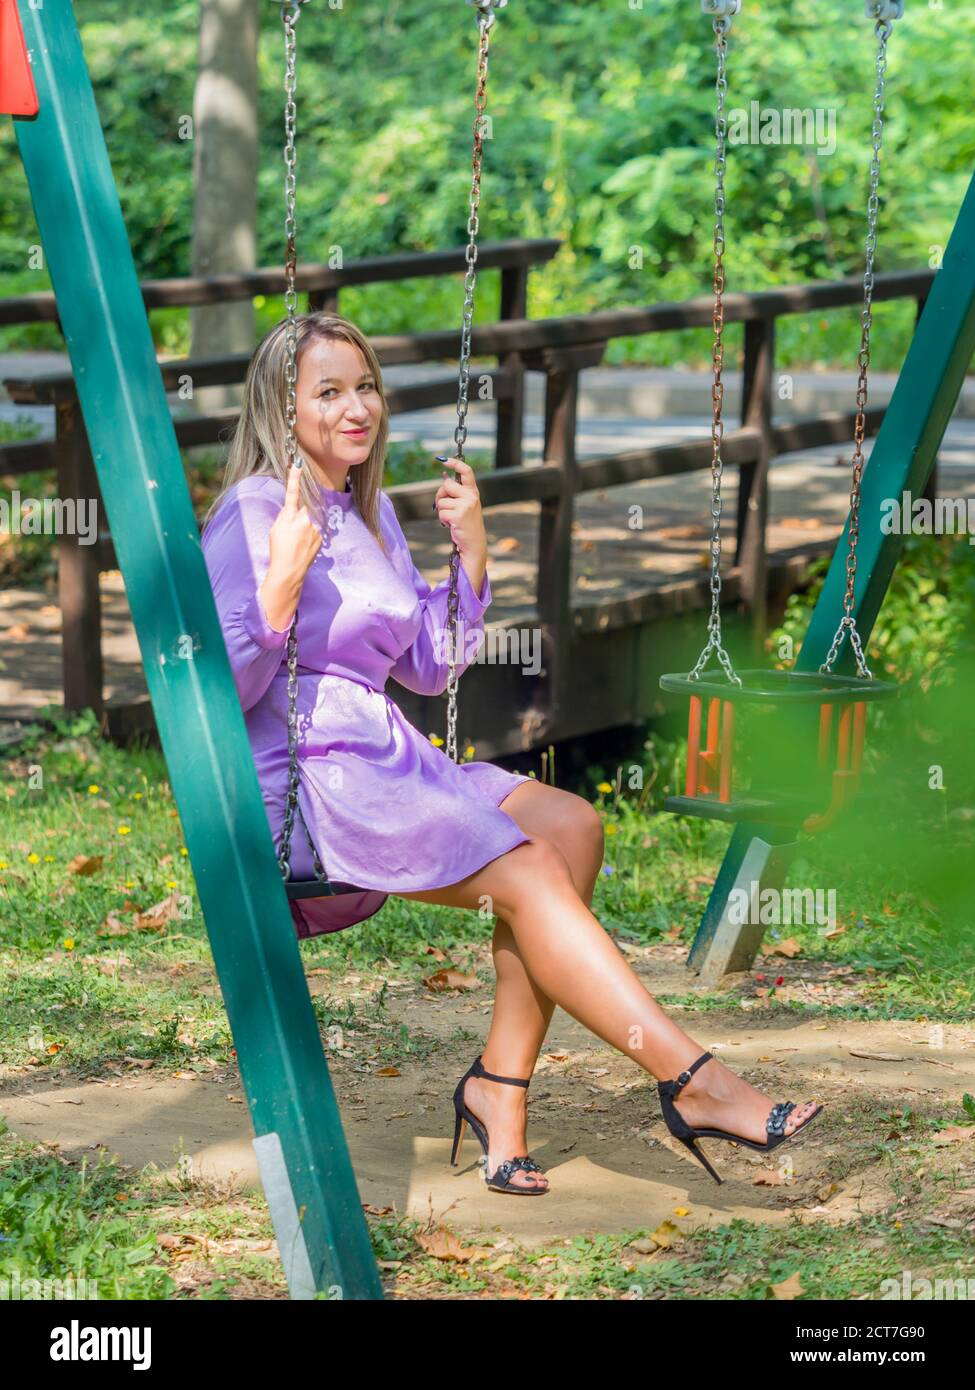 Playful on swings in childfrens playground park before small wooden footbridge foot-bridge eyeshot eyes eye contact looking at camera Stock Photo